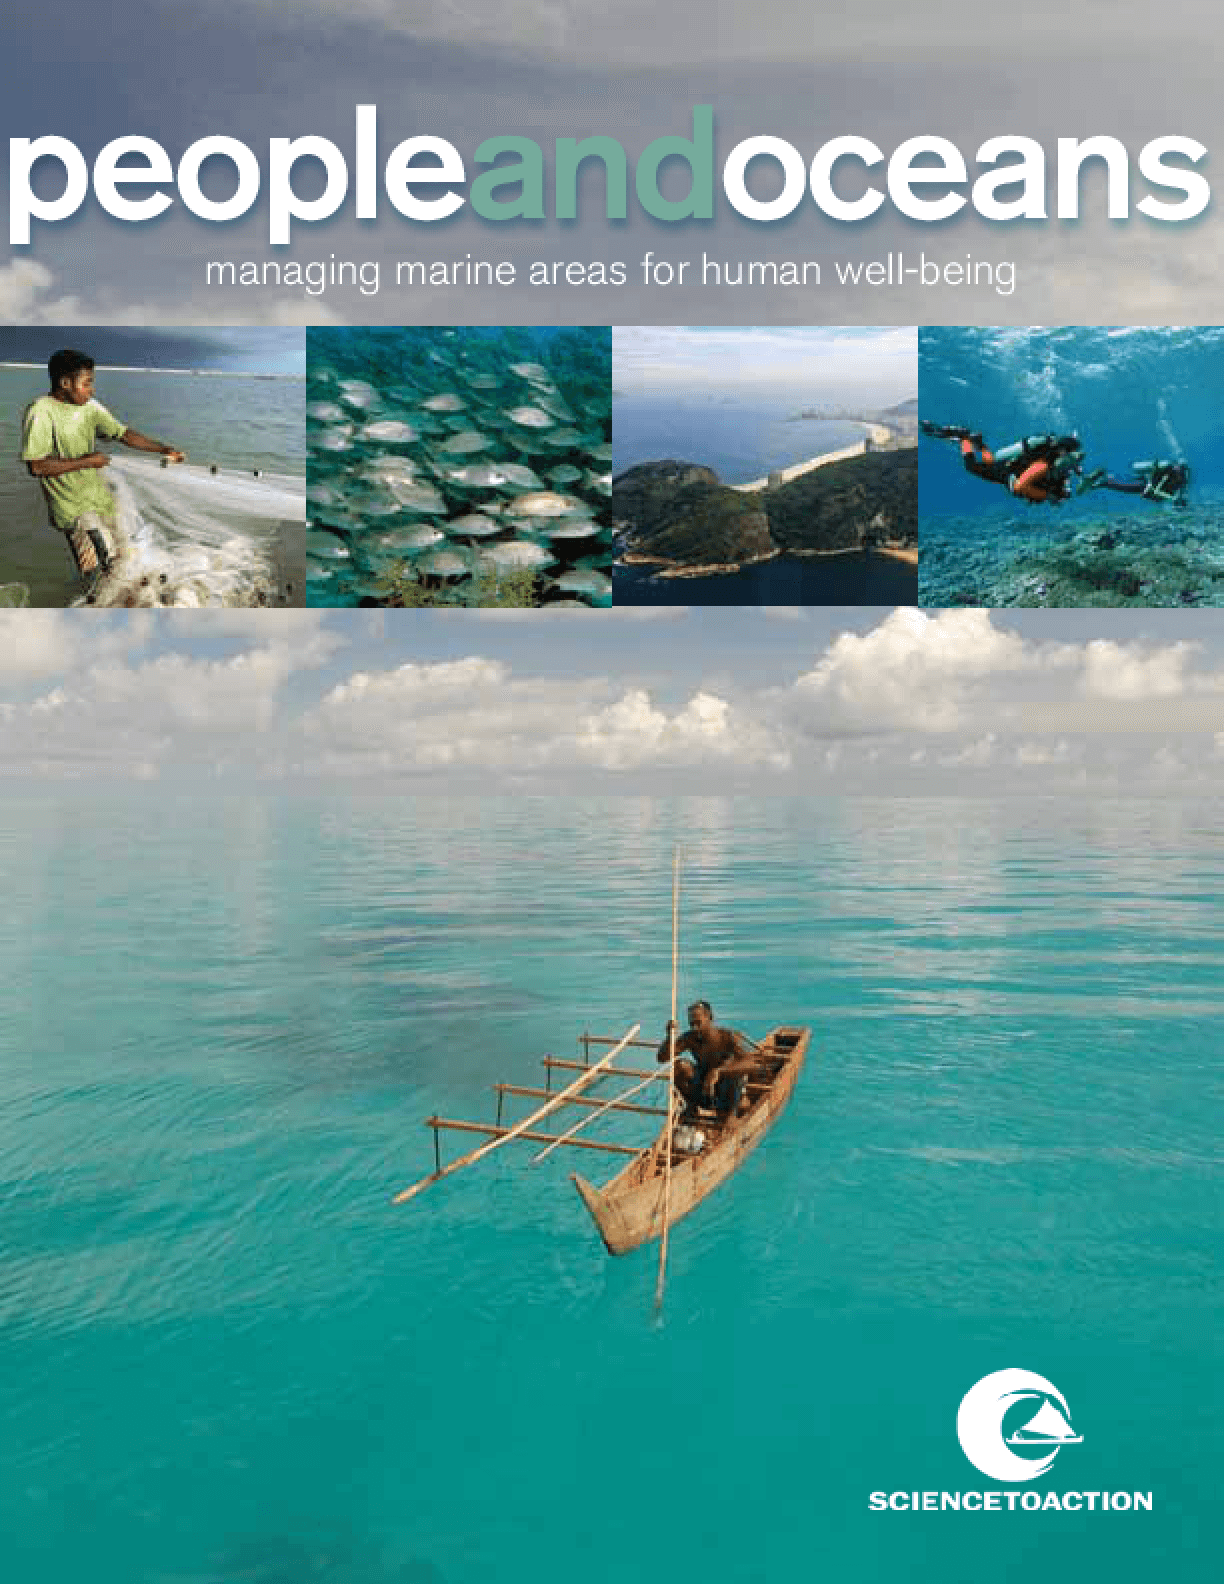 People and Oceans: Managing Marine Areas for Human Well-Being